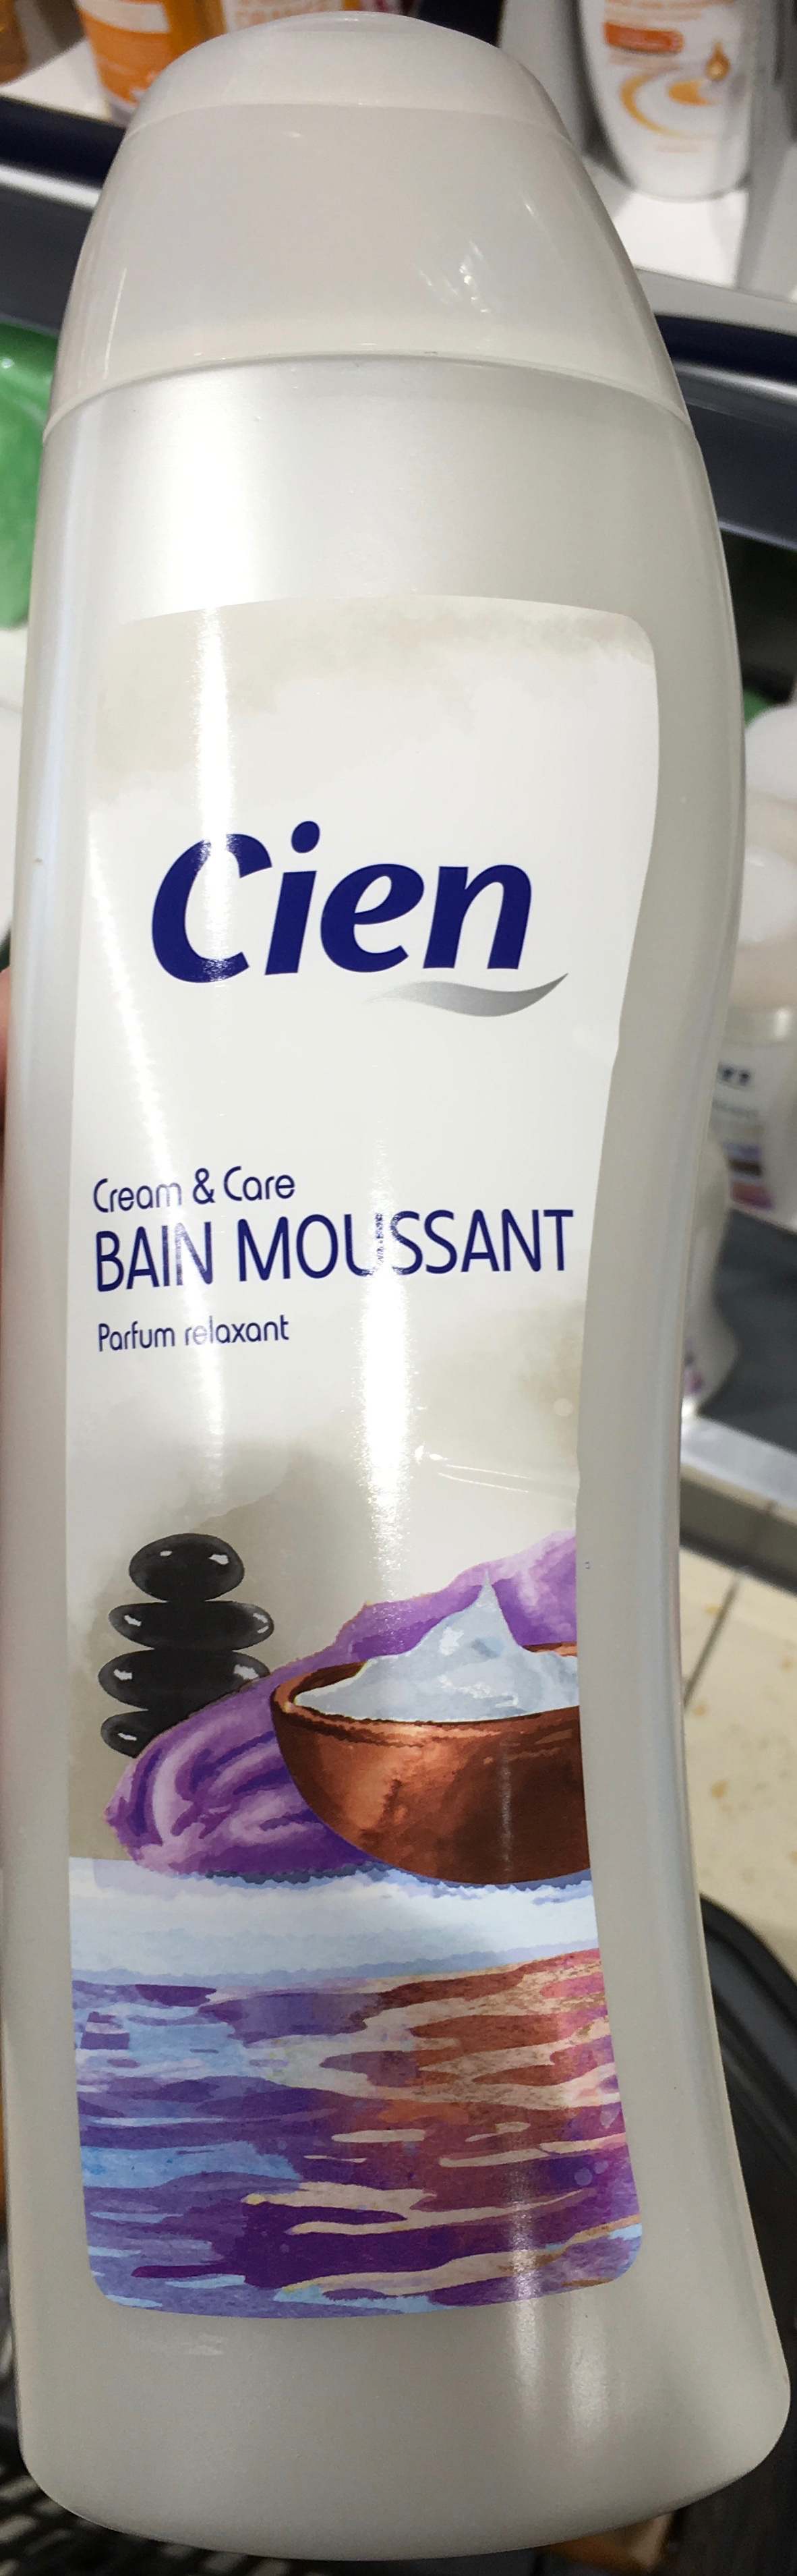 Cream & Care Bain Moussant - Product